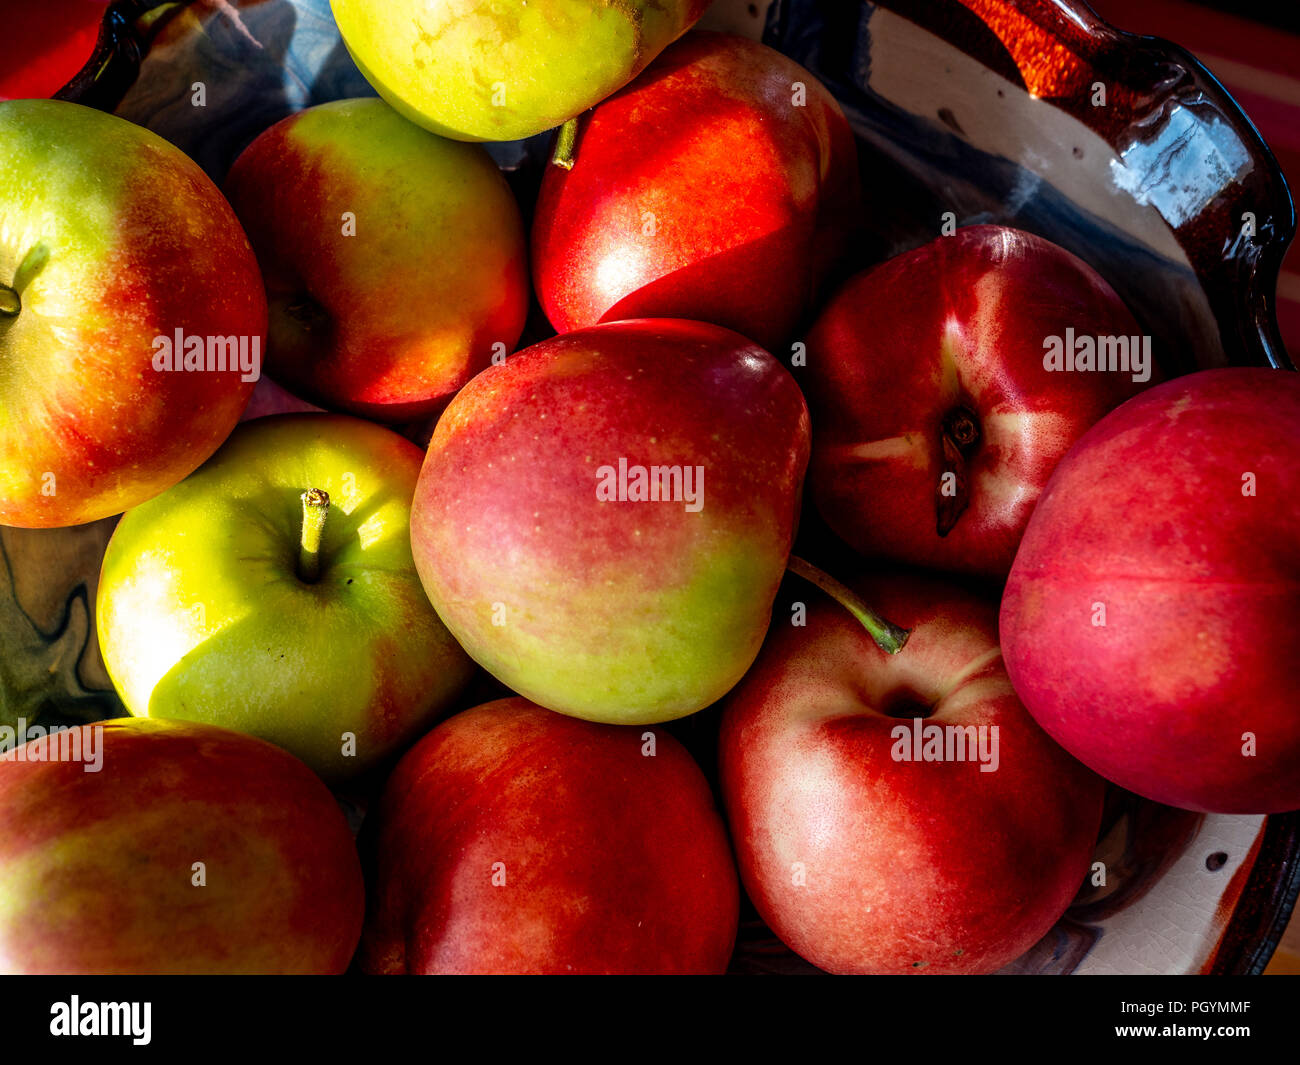 group of red fresh swiss apples in a bowl with sun shade on it - Stock Image